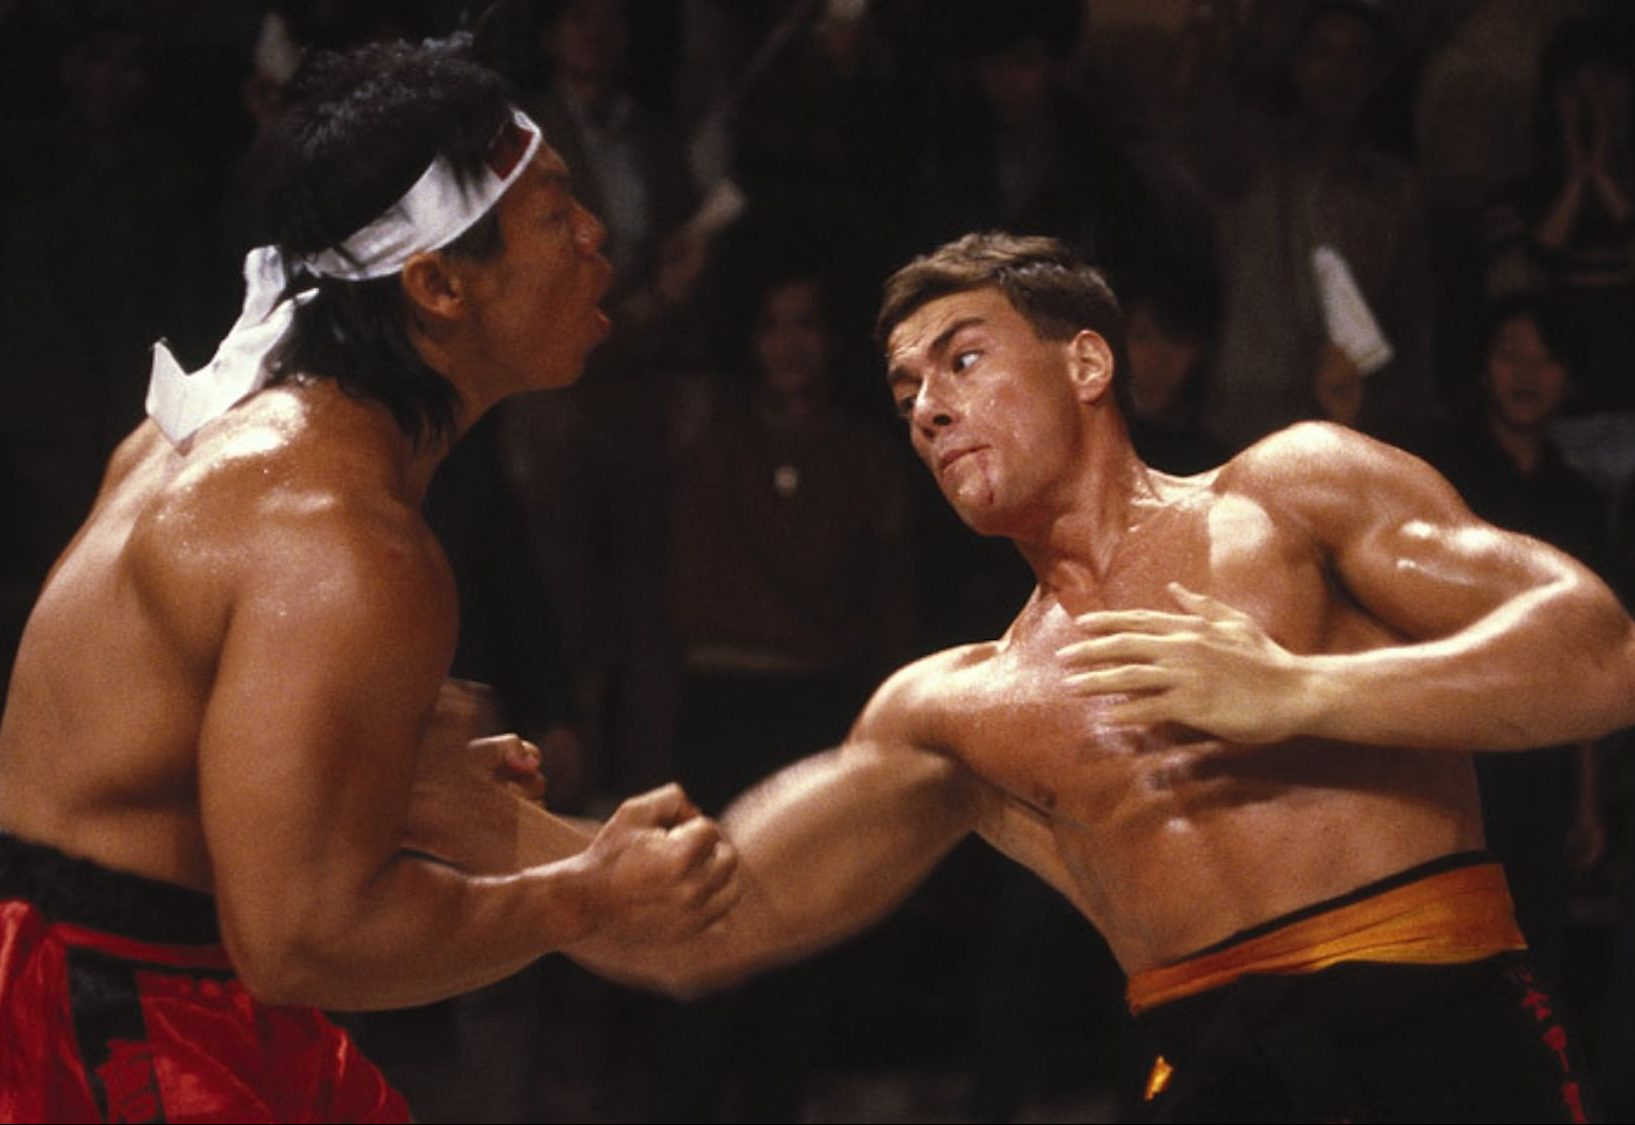 532668 mgm e1619012852888 25 Crotch-Punching Facts About Jean-Claude Van Damme's 1988 Film Bloodsport